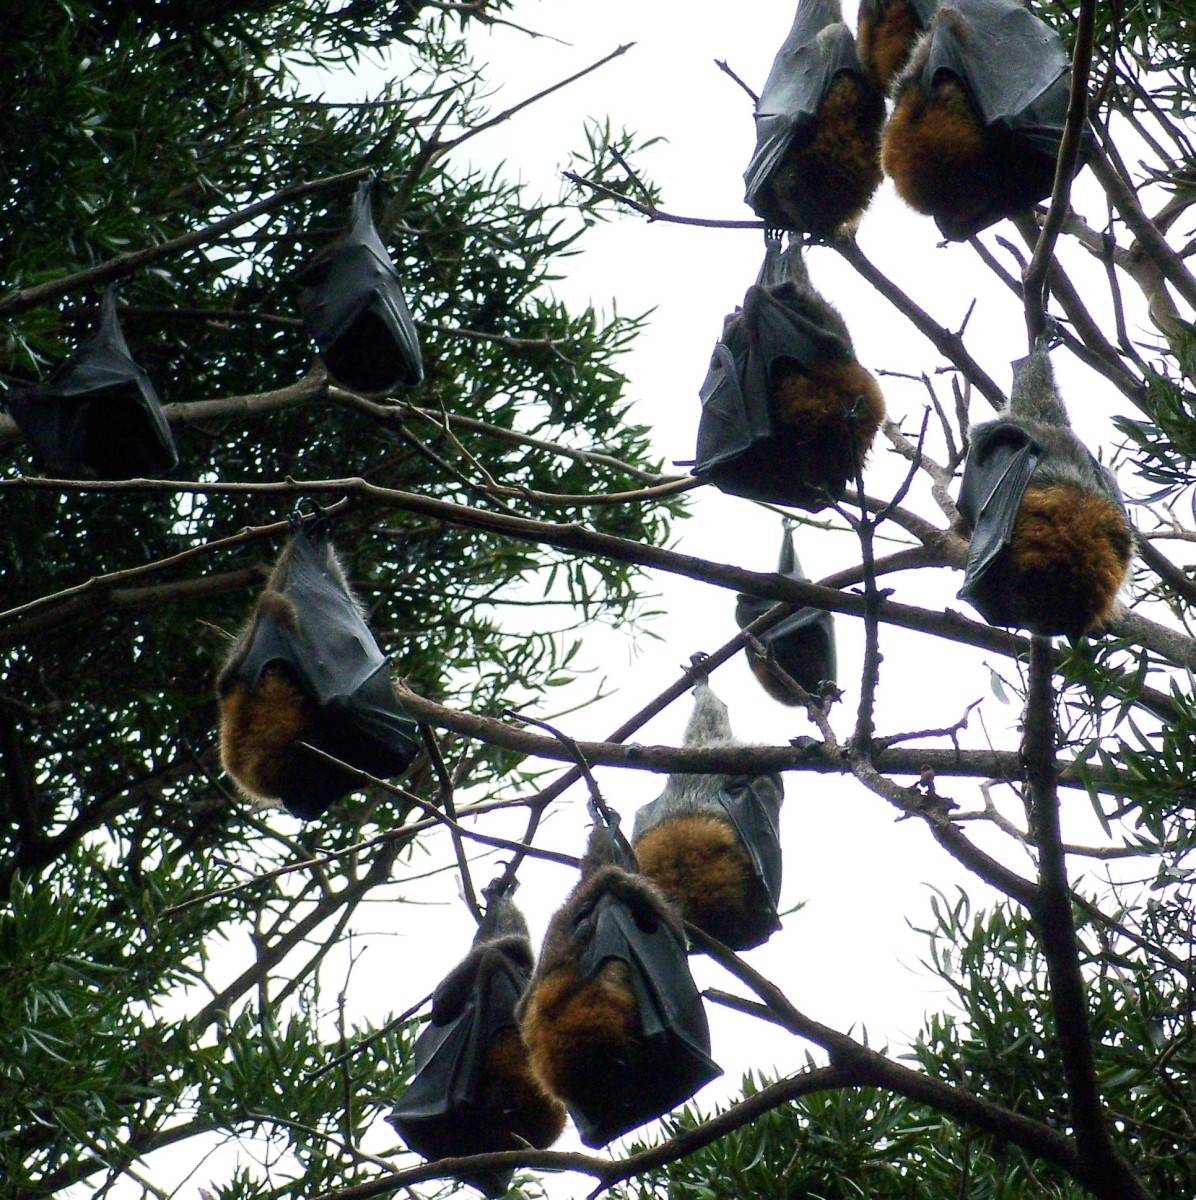 Is this a Skeeter Eater Convention?  One bat can consume up to 1,200 mosquitoes an hour!